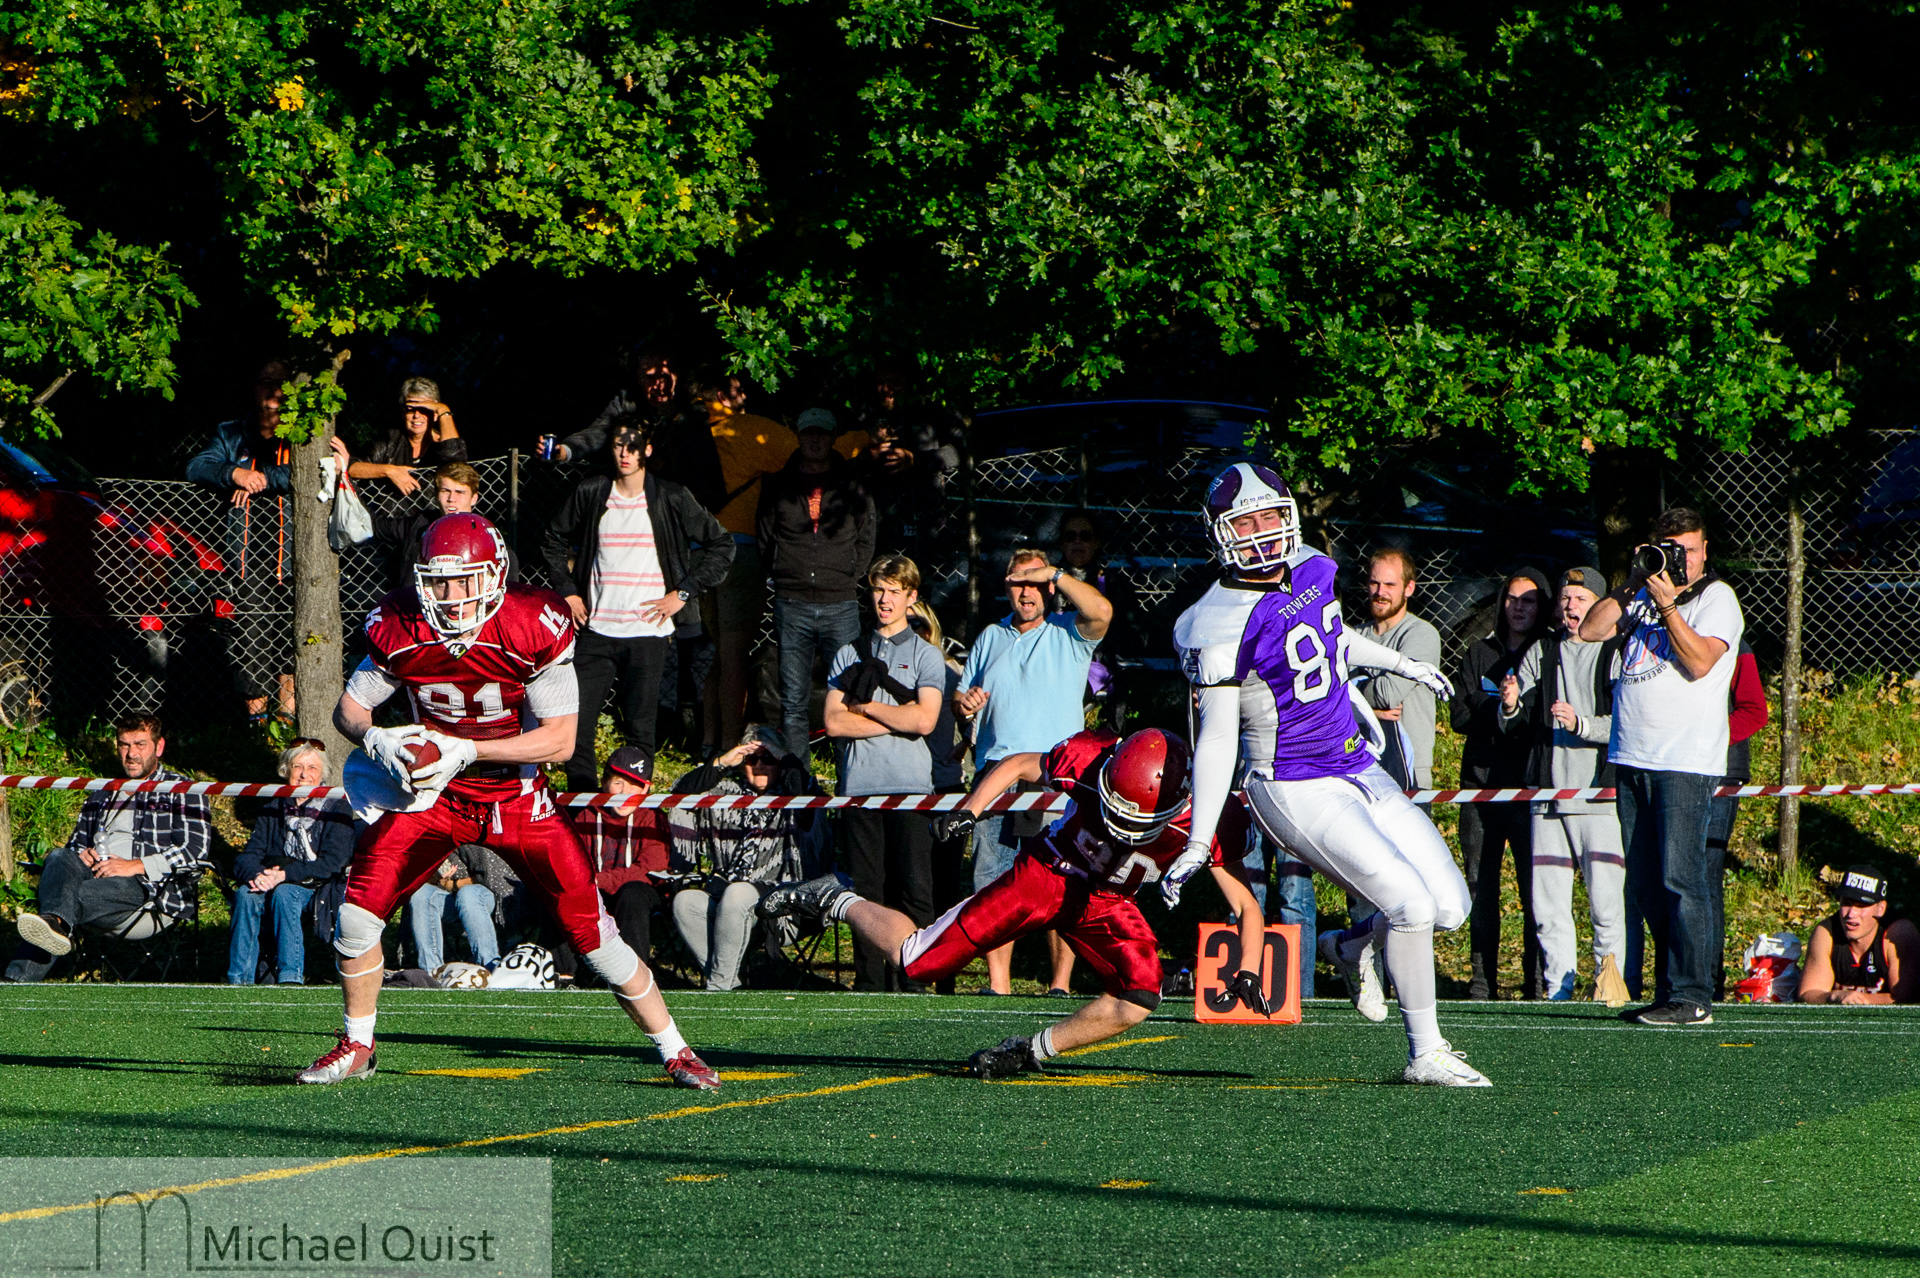 Junior-Bowl-2015-Copenhagen-Towers-vs-Herlev-Rebels-51